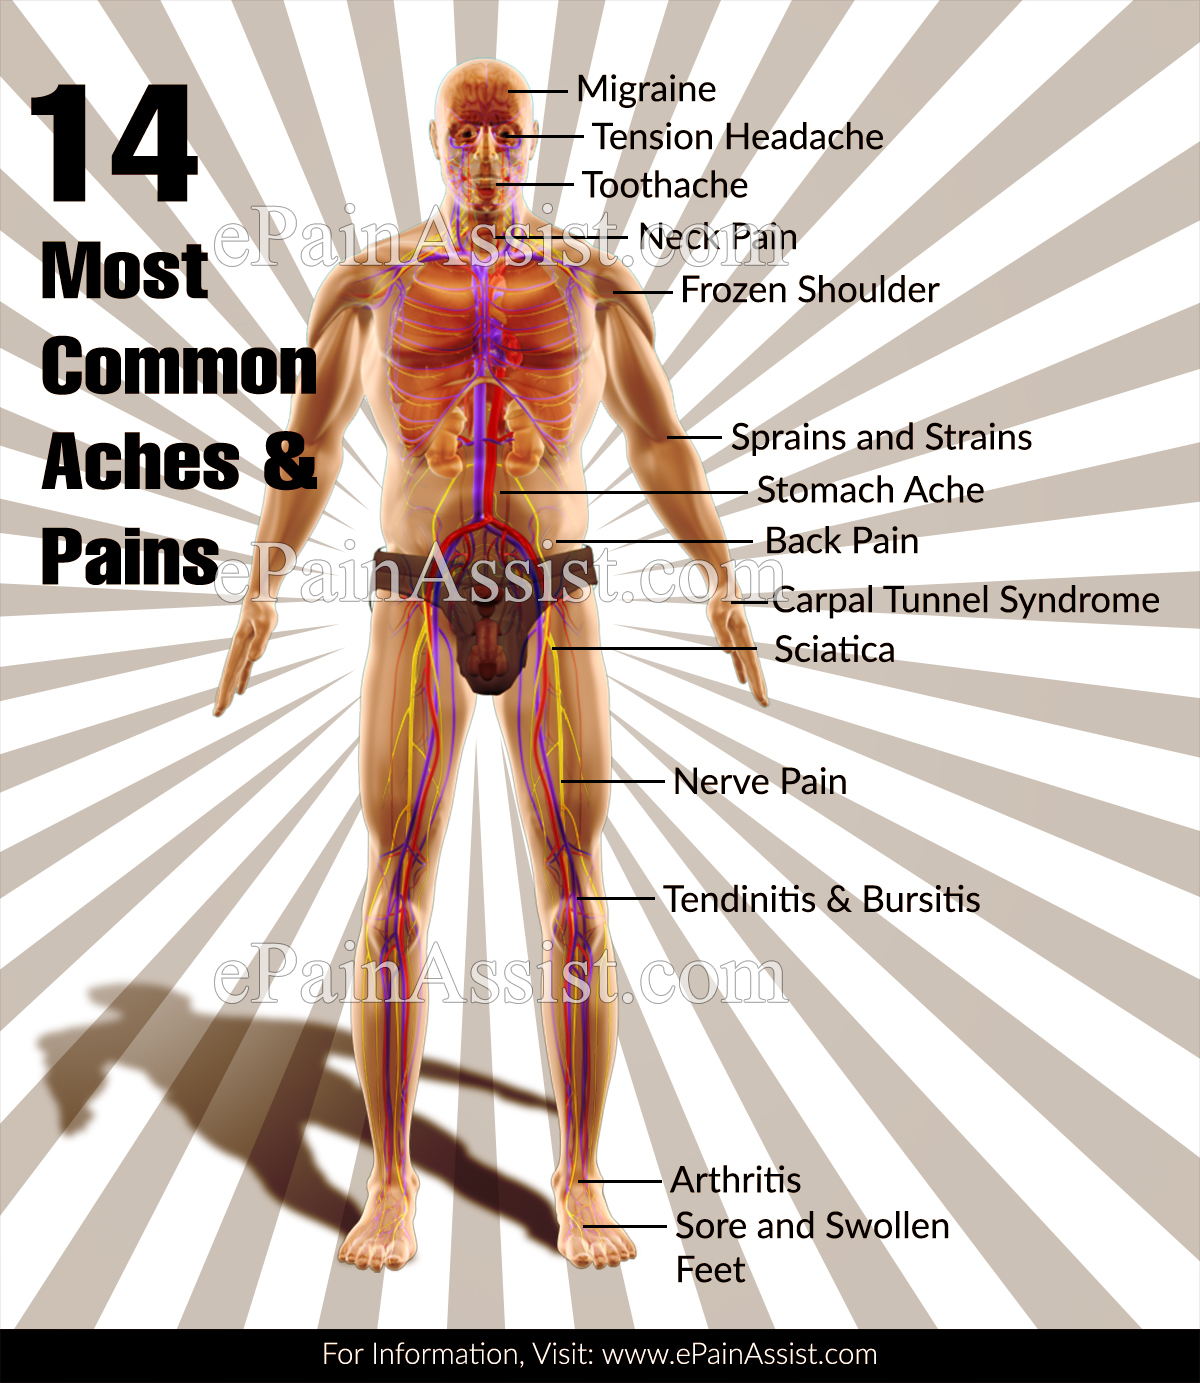 14 Most Common Aches and Pains